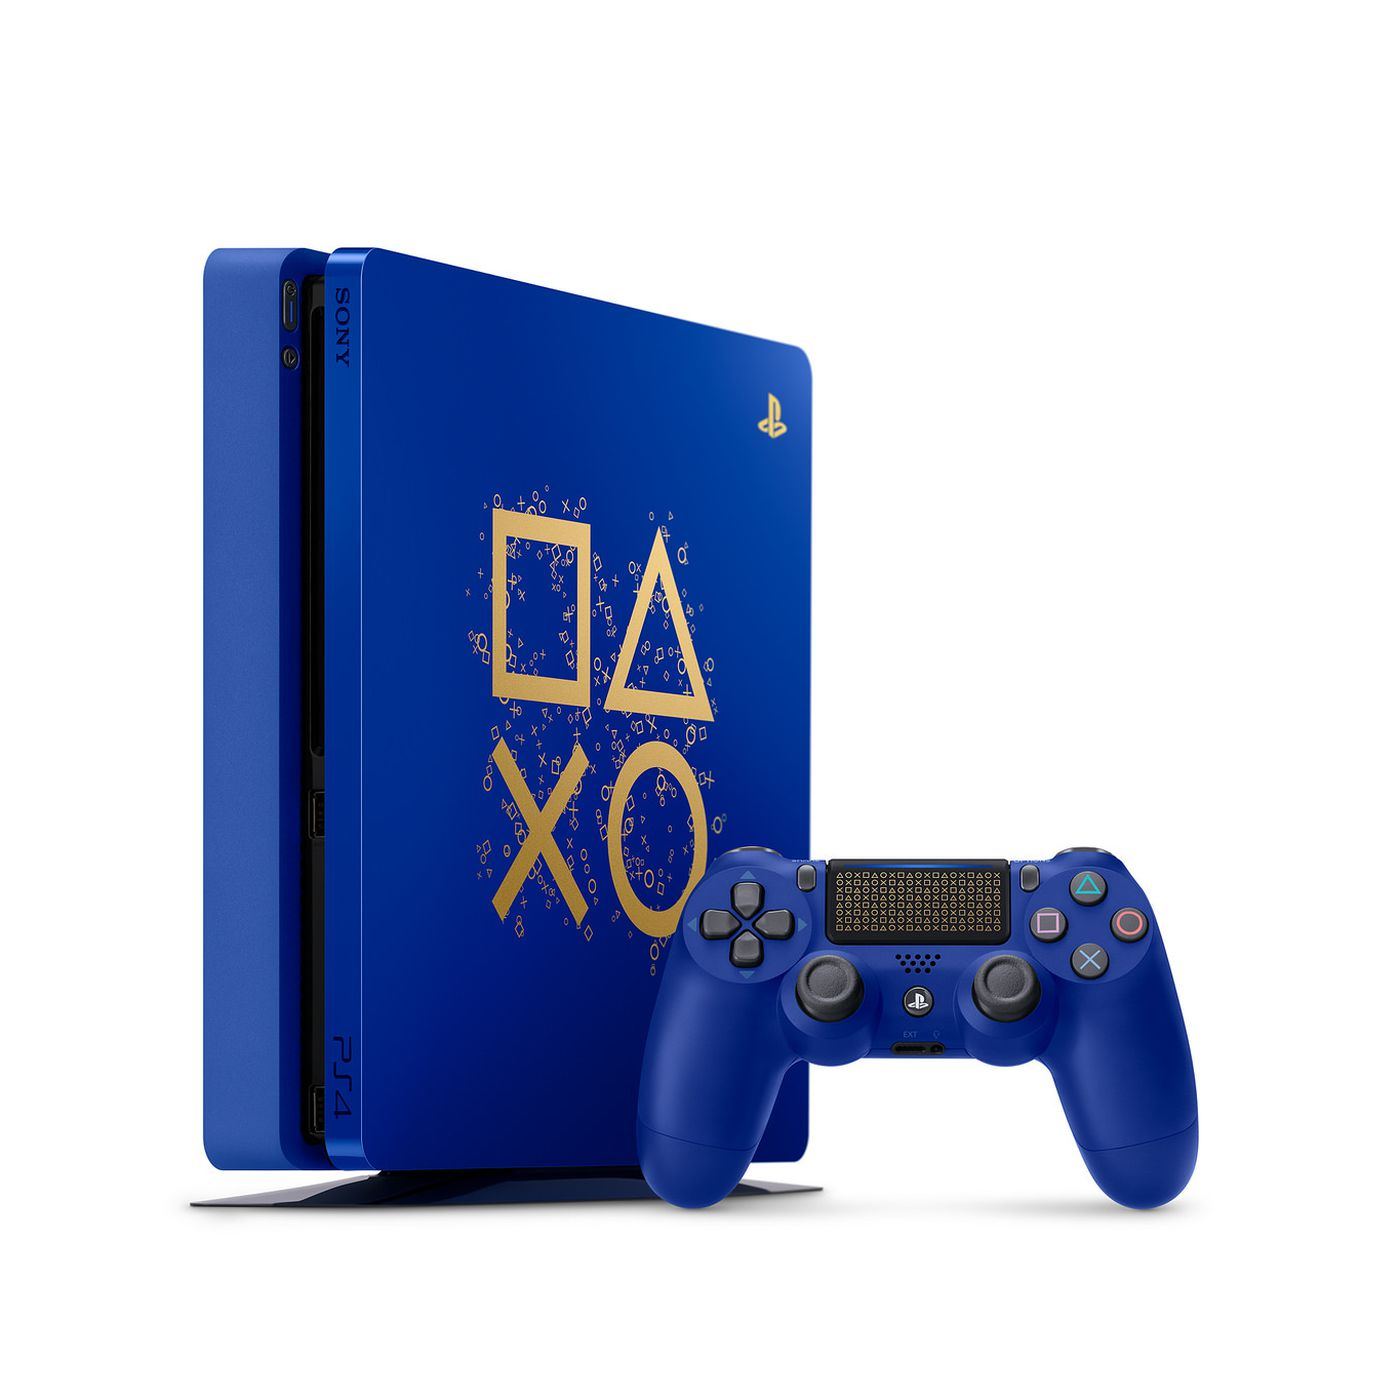 8d96489b611 Sony s annual sale is offering limited edition blue PS4s and tons of game  deals - The Verge